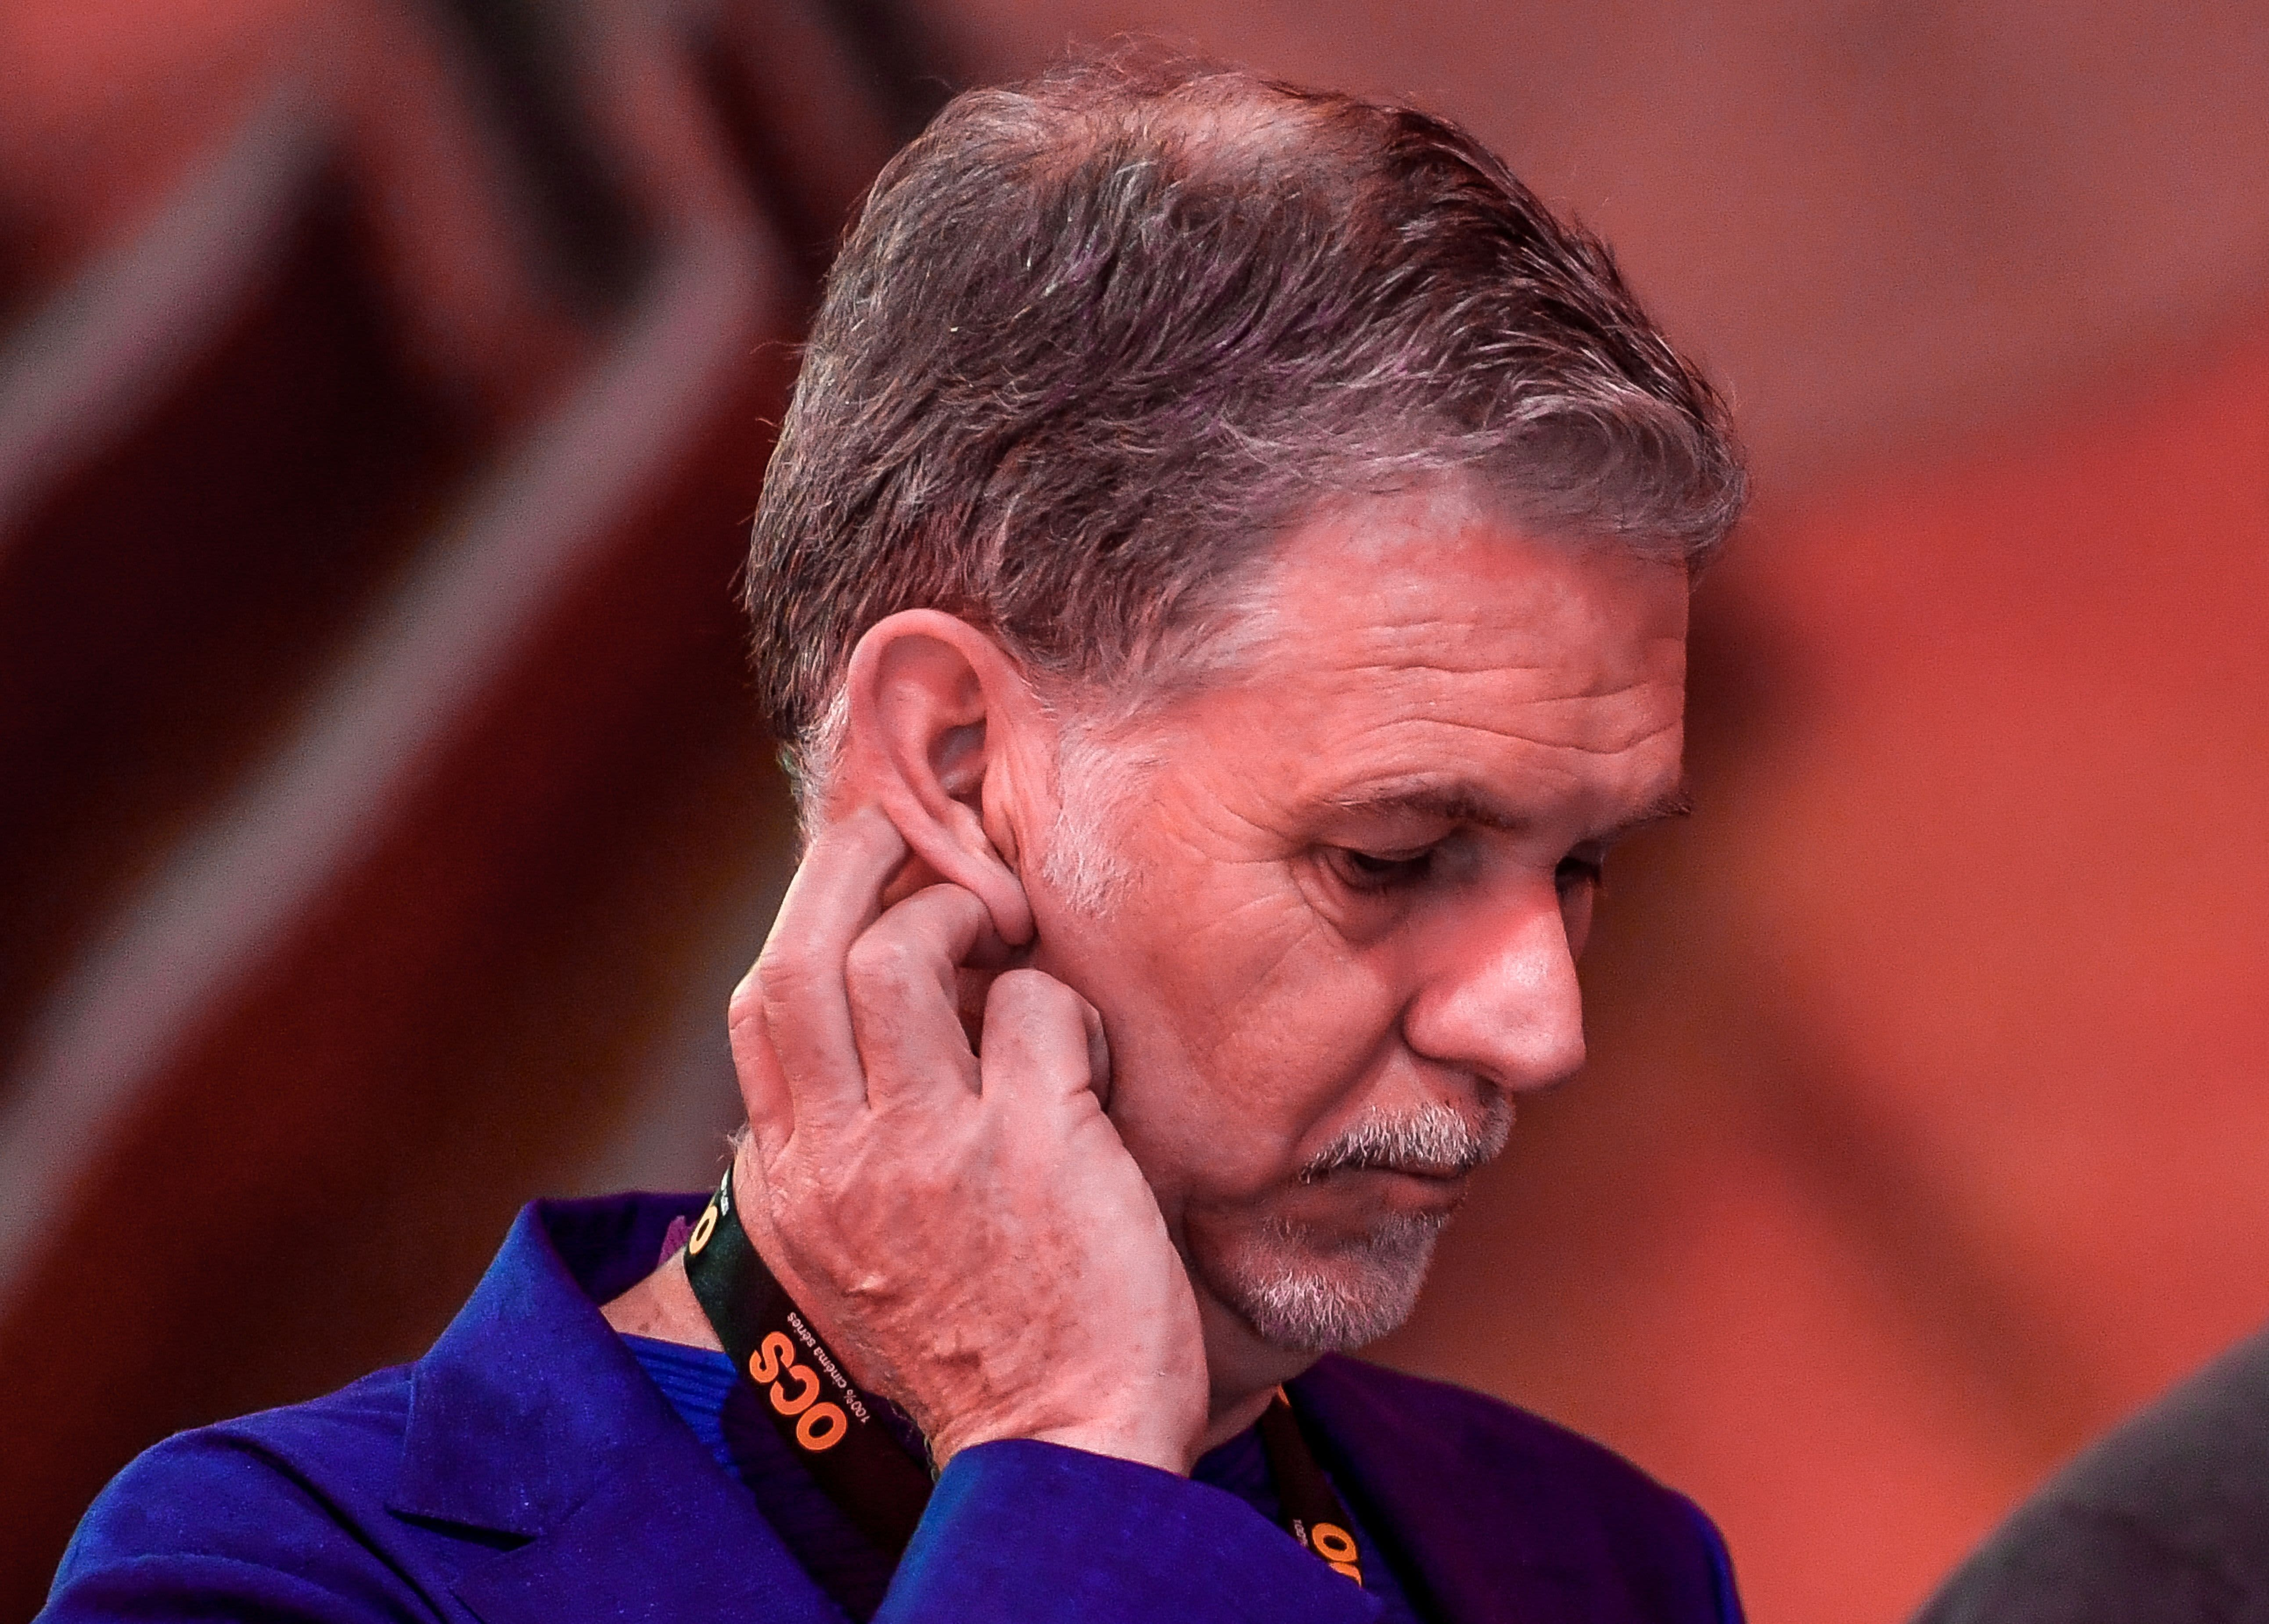 Netflix shares fall after earnings — here's what could come next